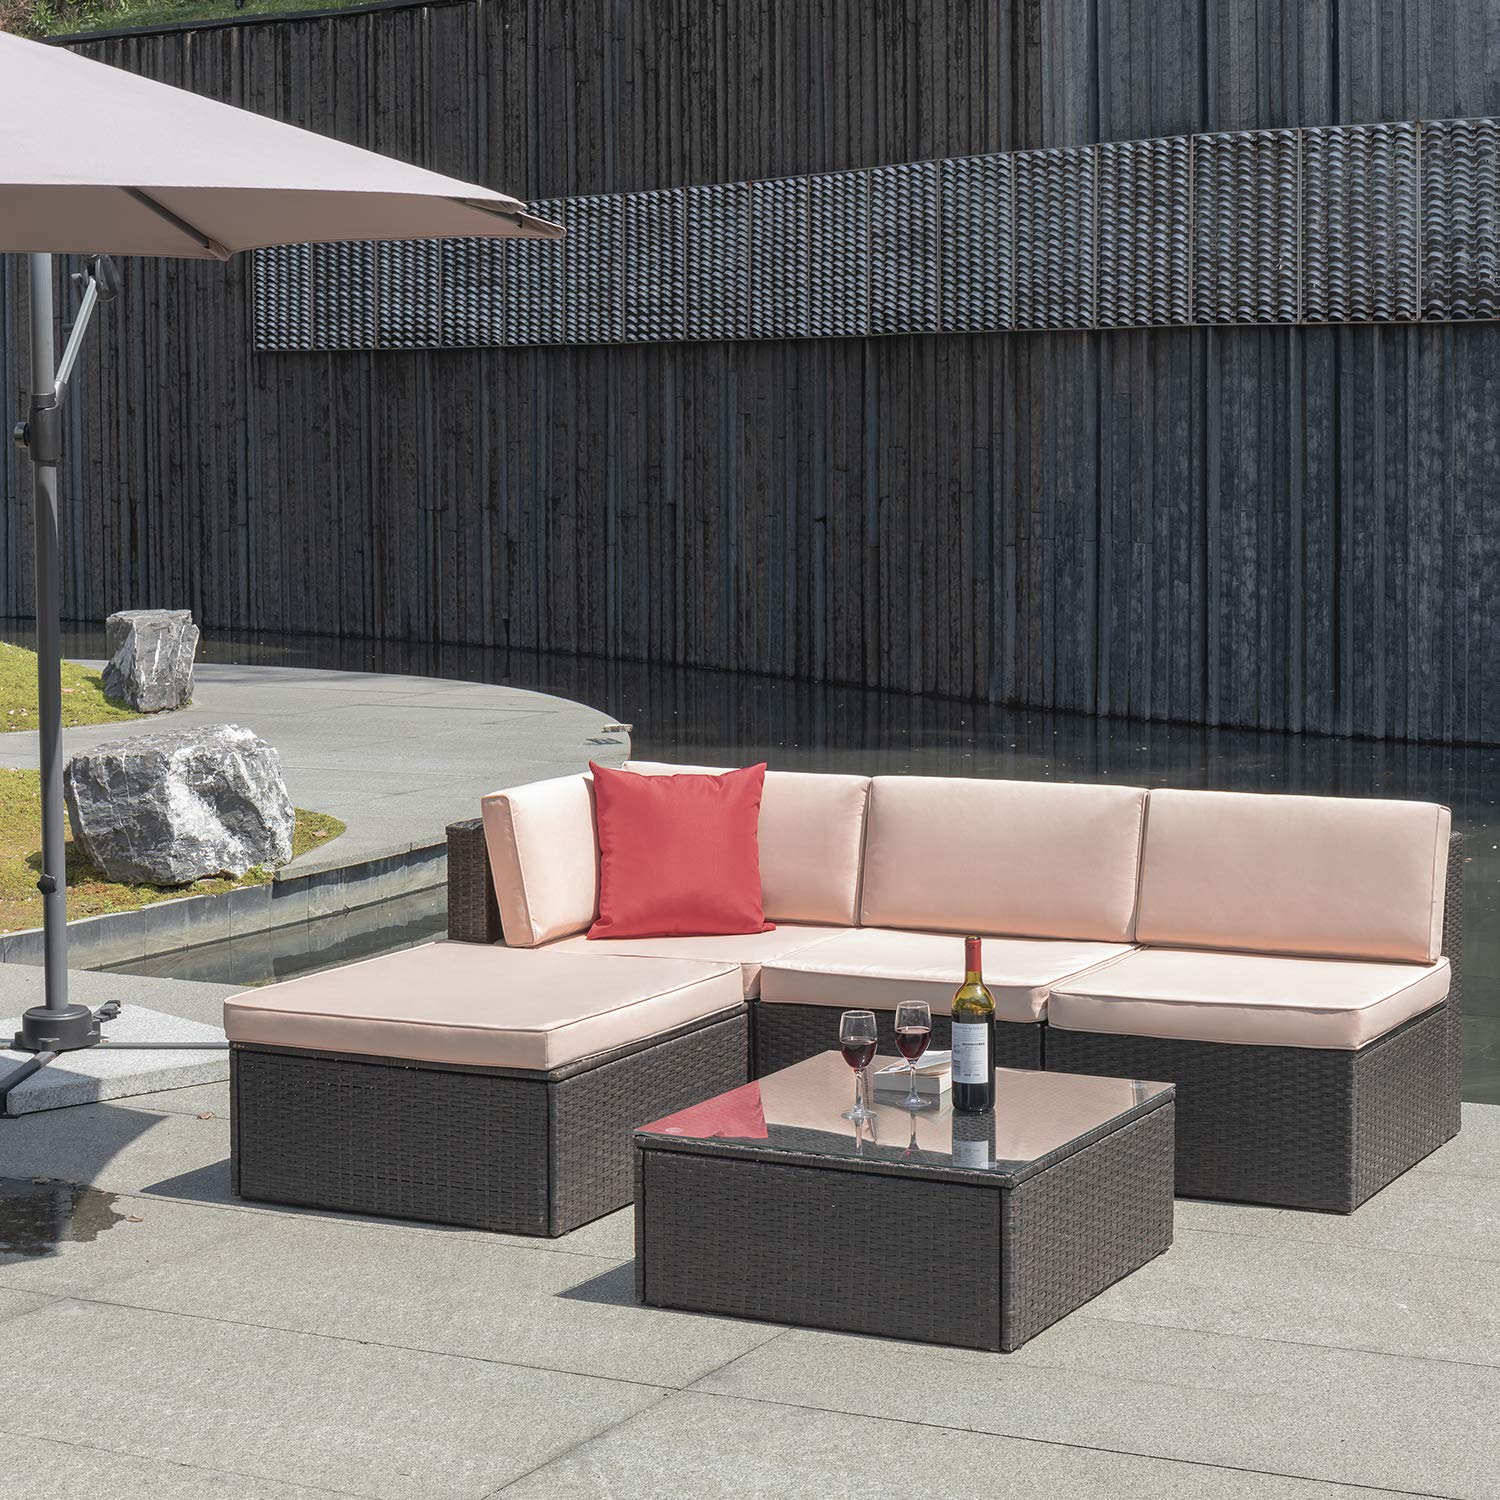 Flamaker 5 Pieces PE Rattan Sectional Sofa Outdoor Furniture Sectional  Furniture Sets Mordern Bistro Set Wicker Patio Sofa Conversation Sets with  ...